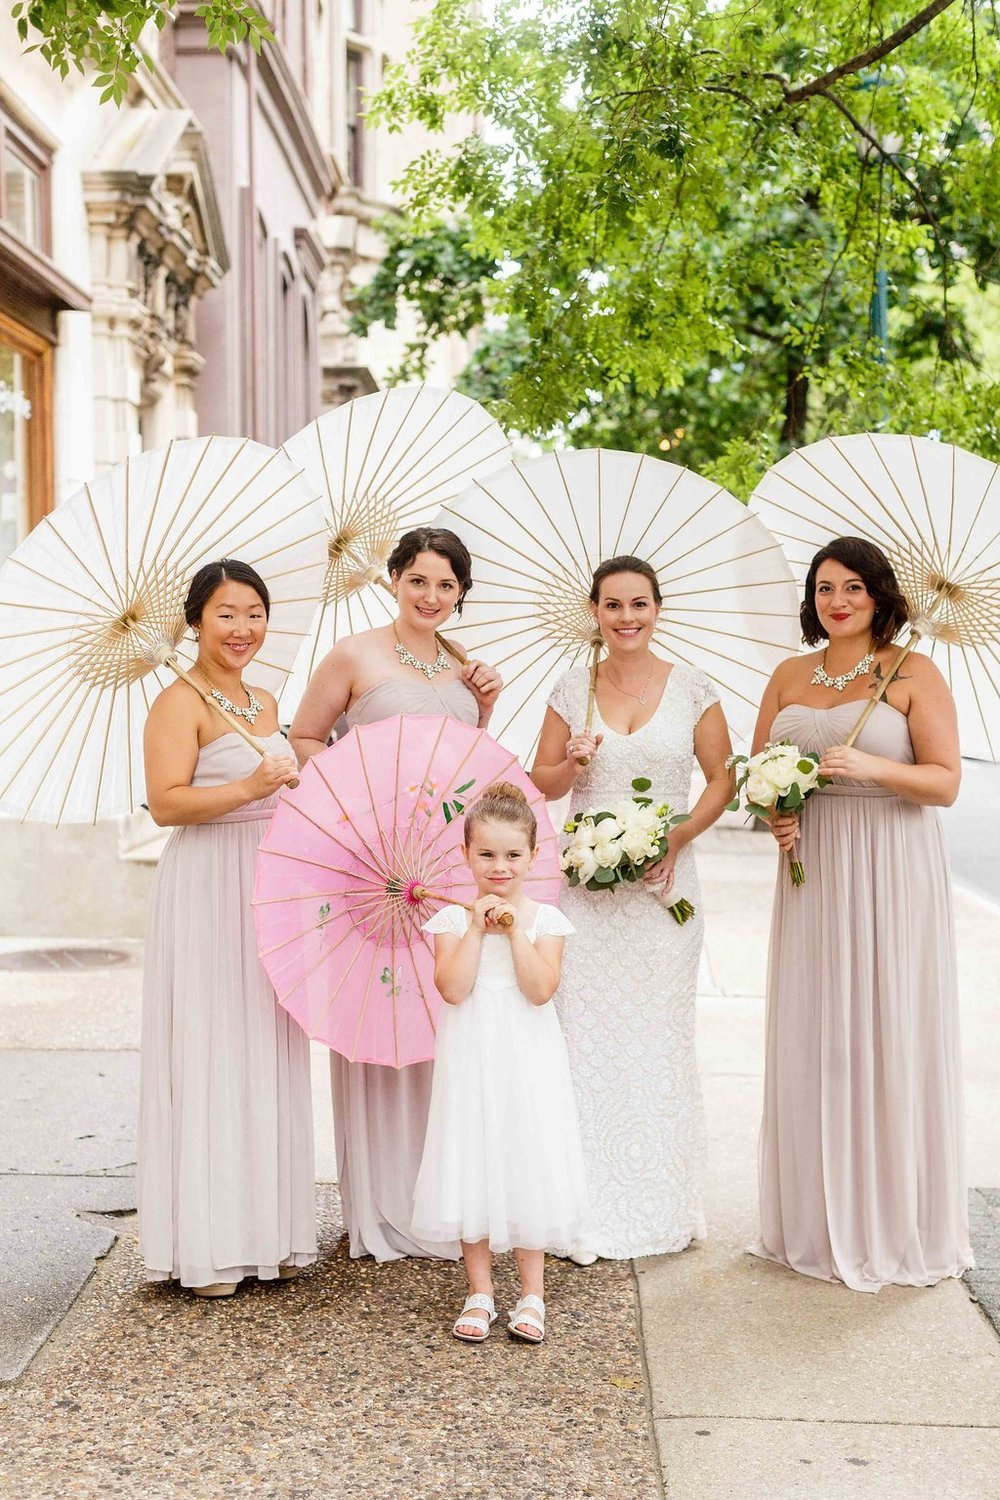 17 Philadelphia Wedding Rittenhouse Square Stotesbury Mansion Bridal Party Parasols.jpg